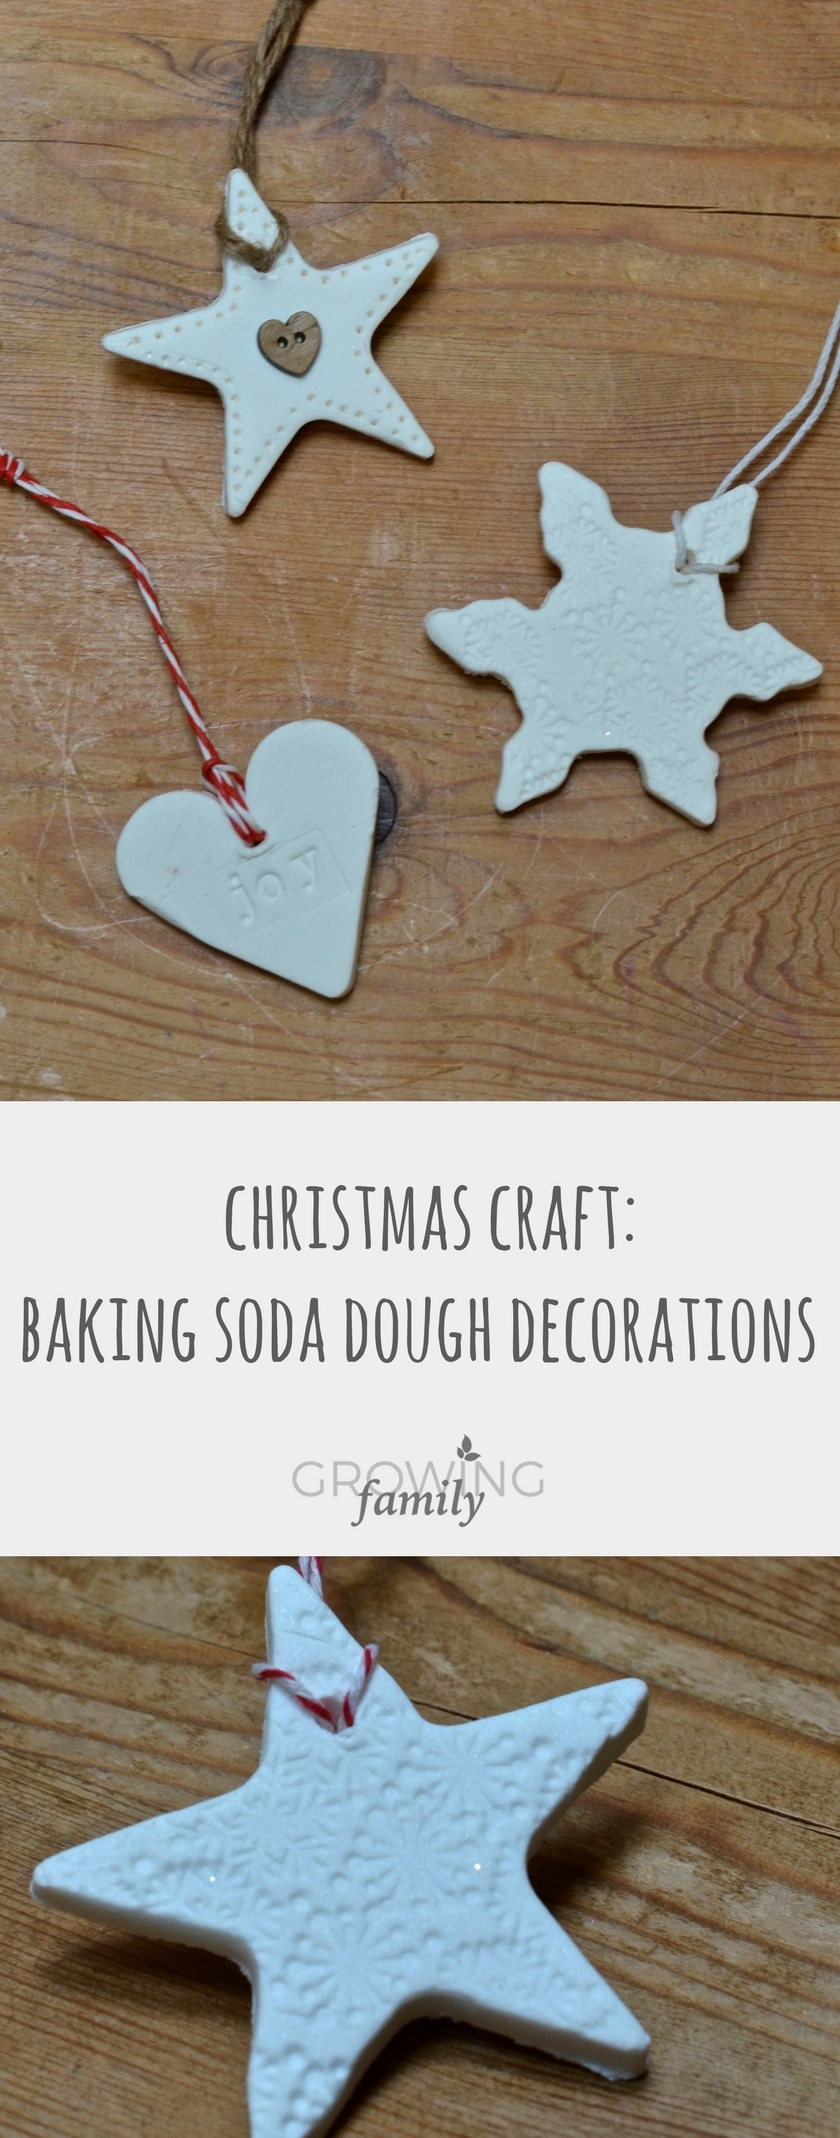 Best Homemade Christmas Ornaments Using Baking Soda Dough This Month